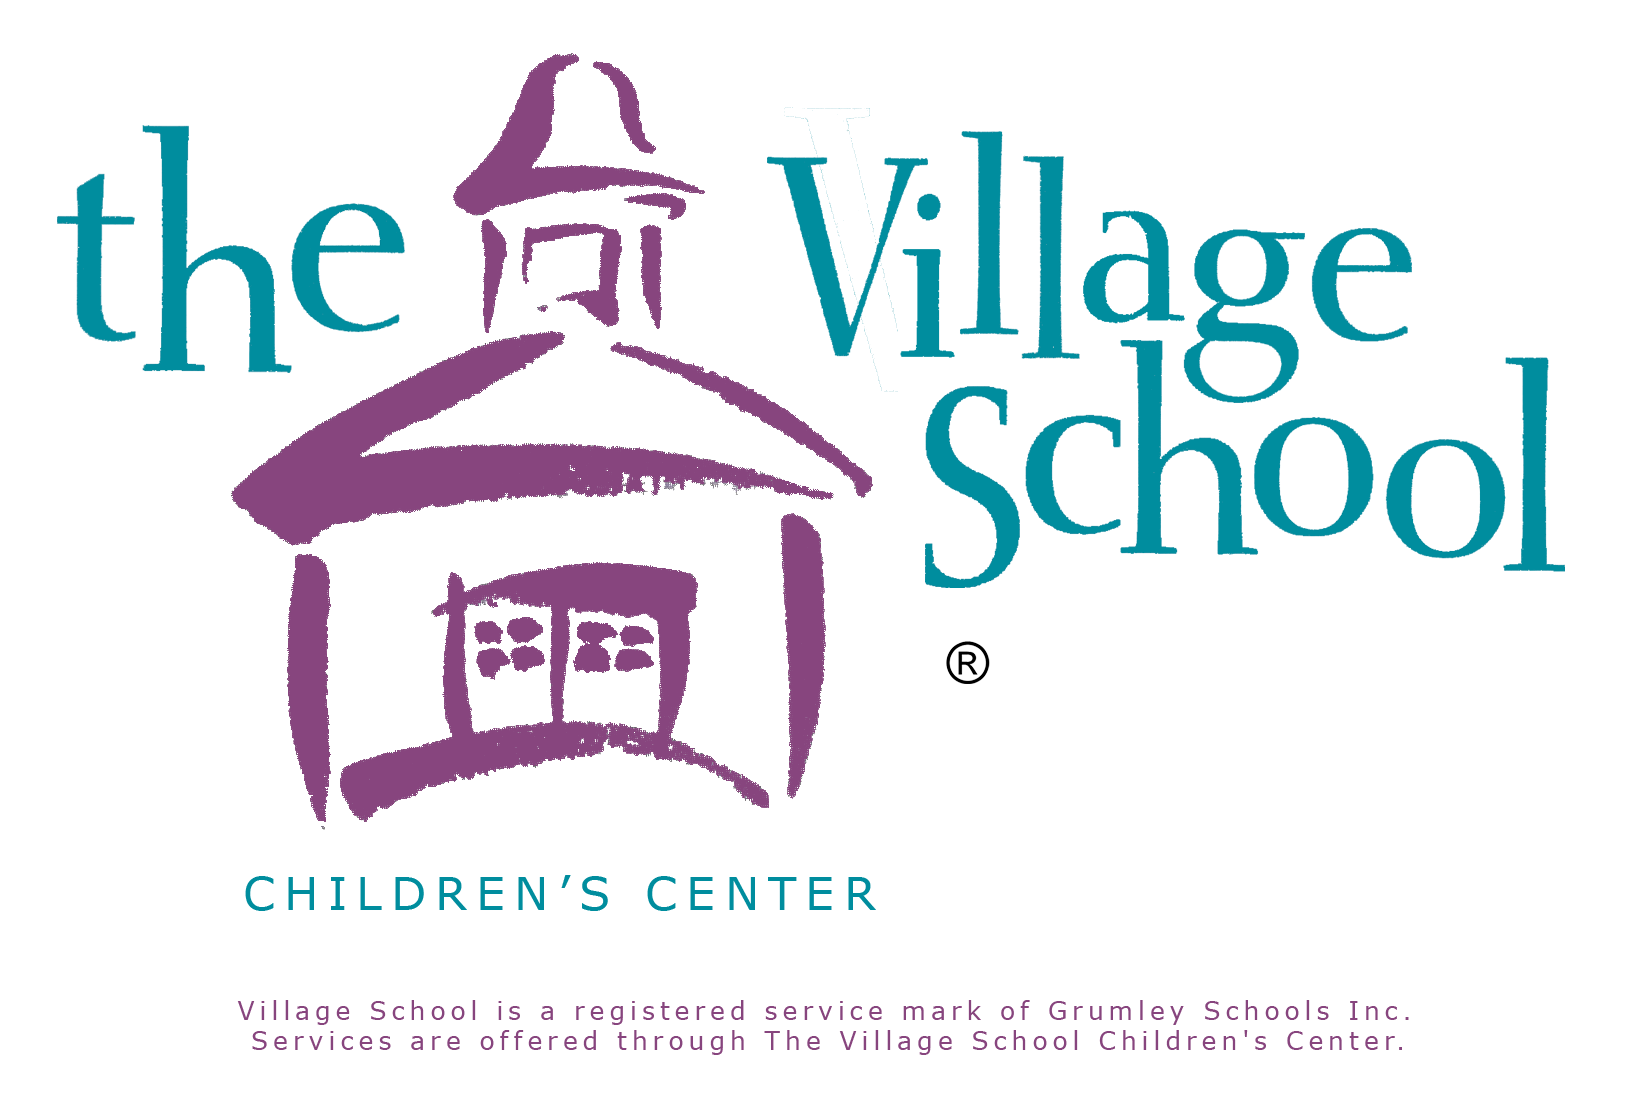 Neighbors clipart village. The school lunch snack